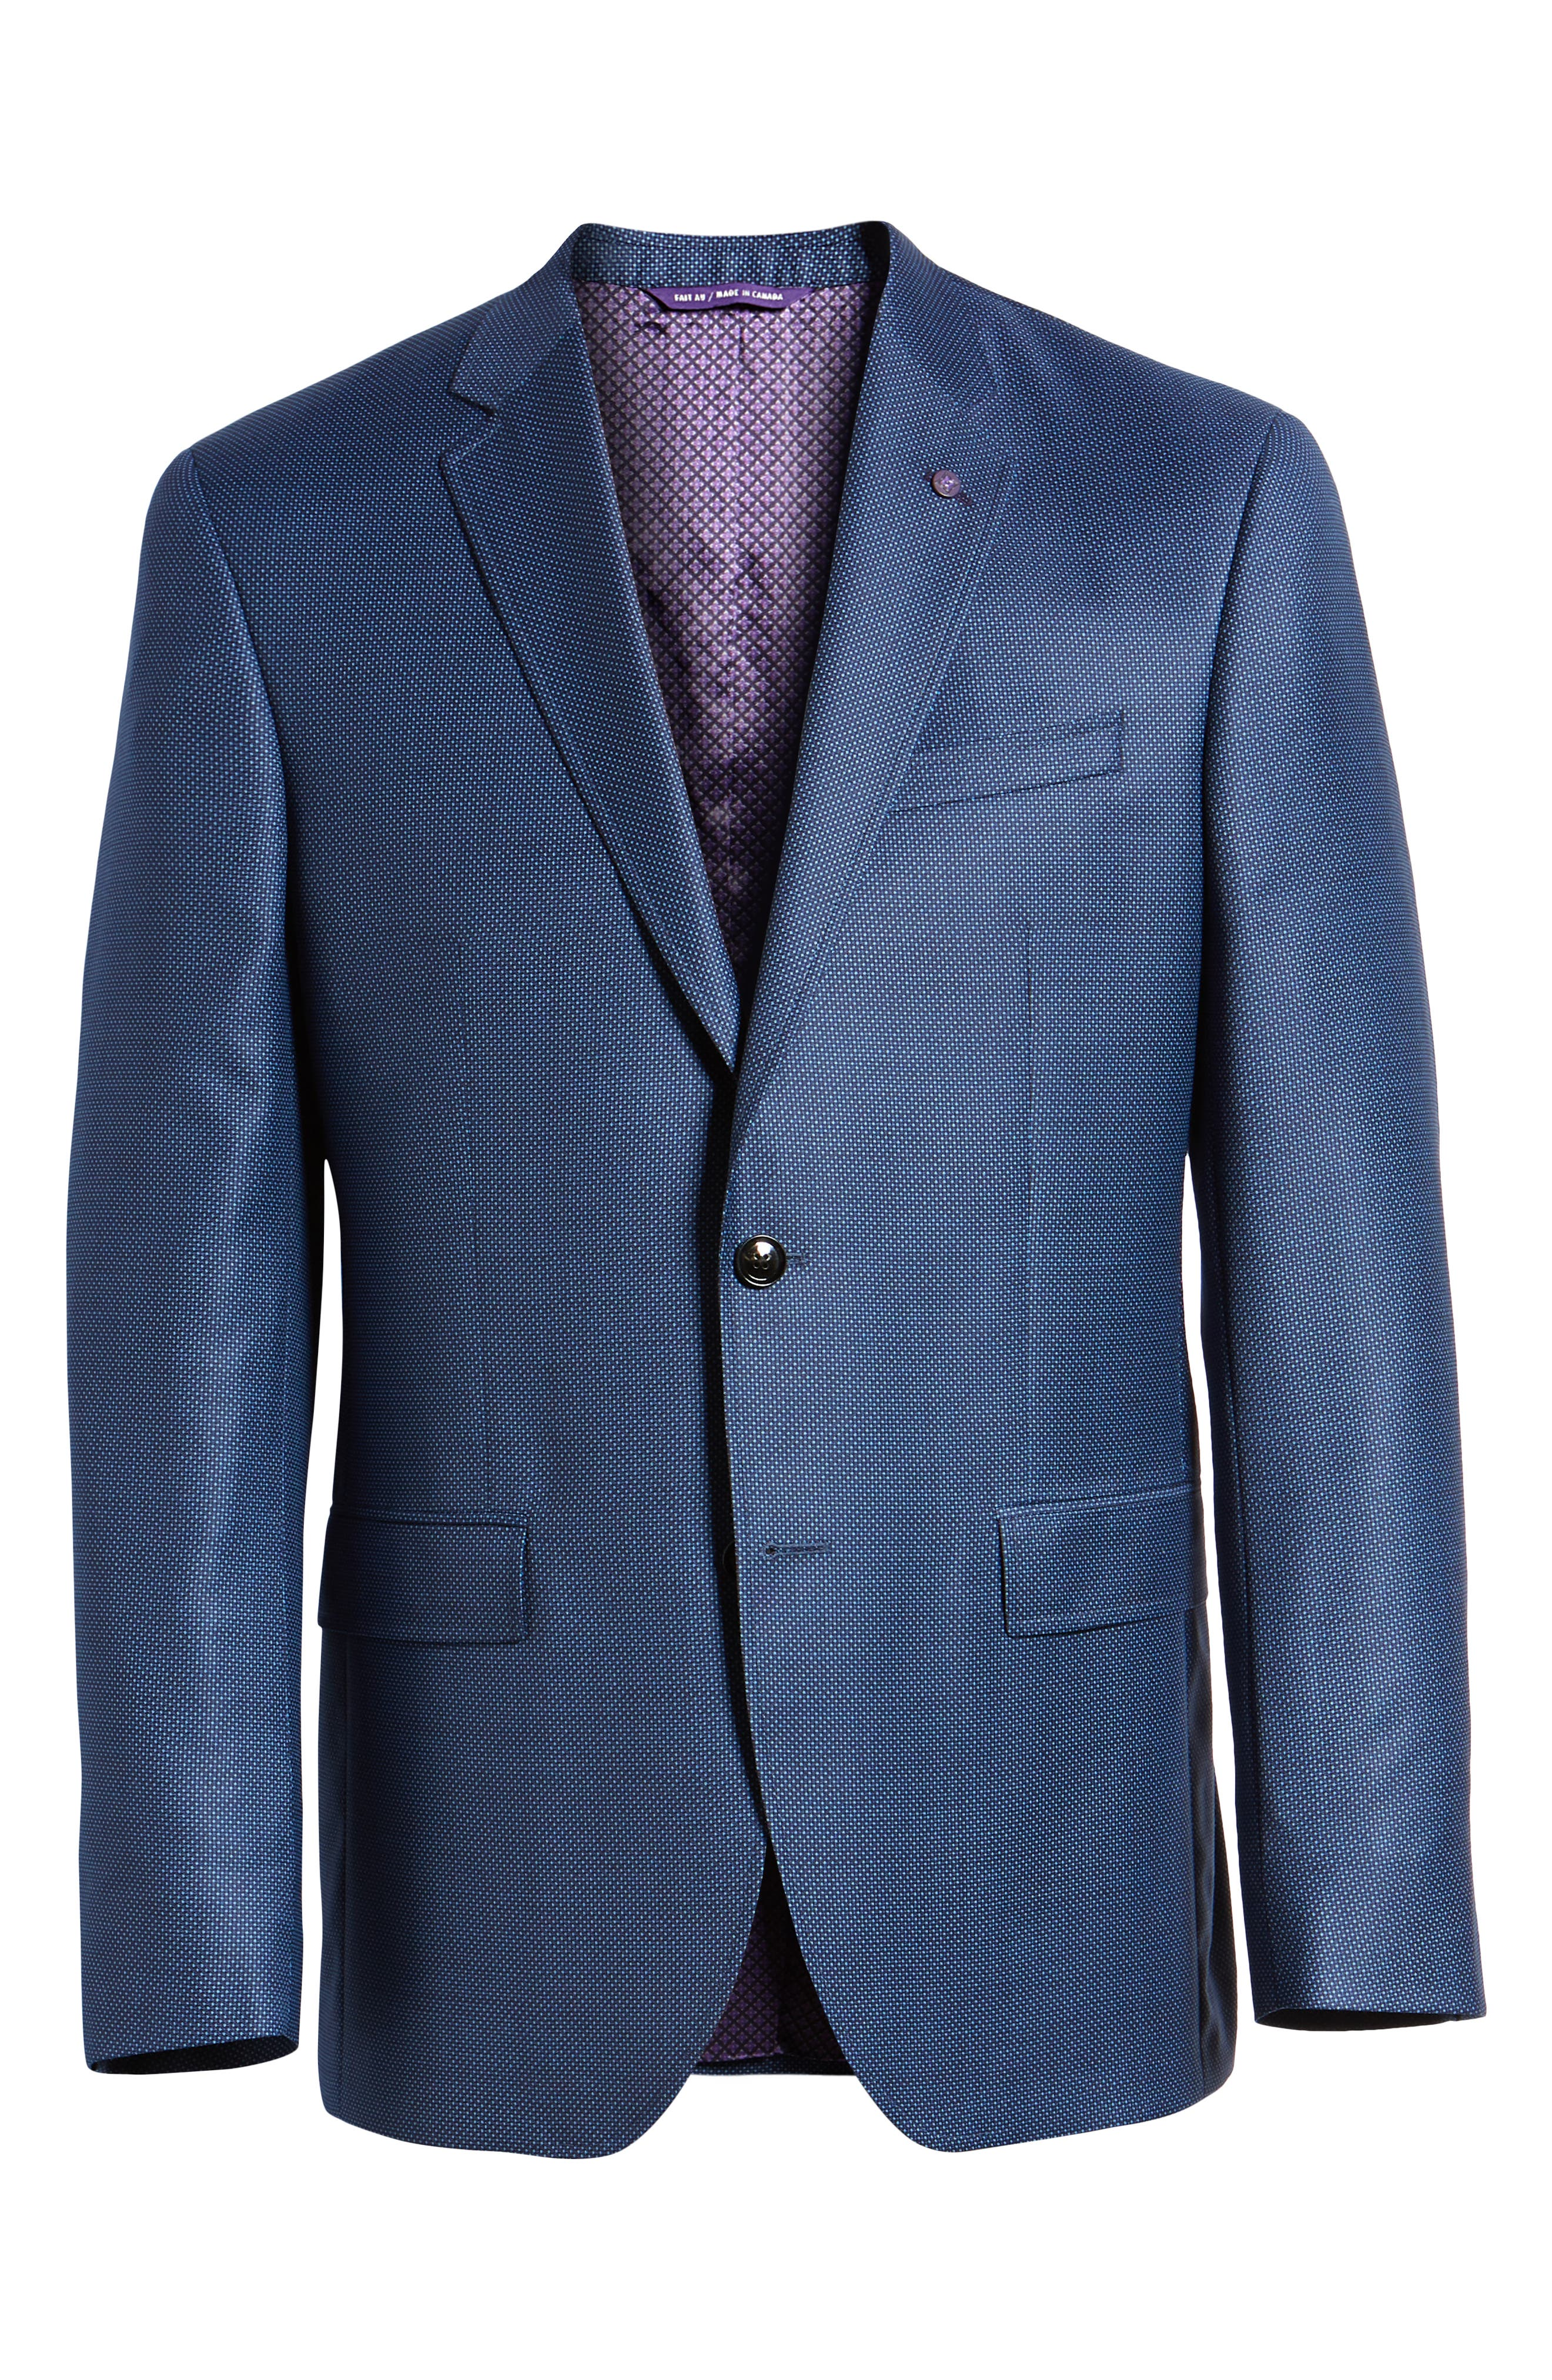 Jay Trim Fit Microdot Wool Sport Coat,                             Alternate thumbnail 6, color,                             Blue